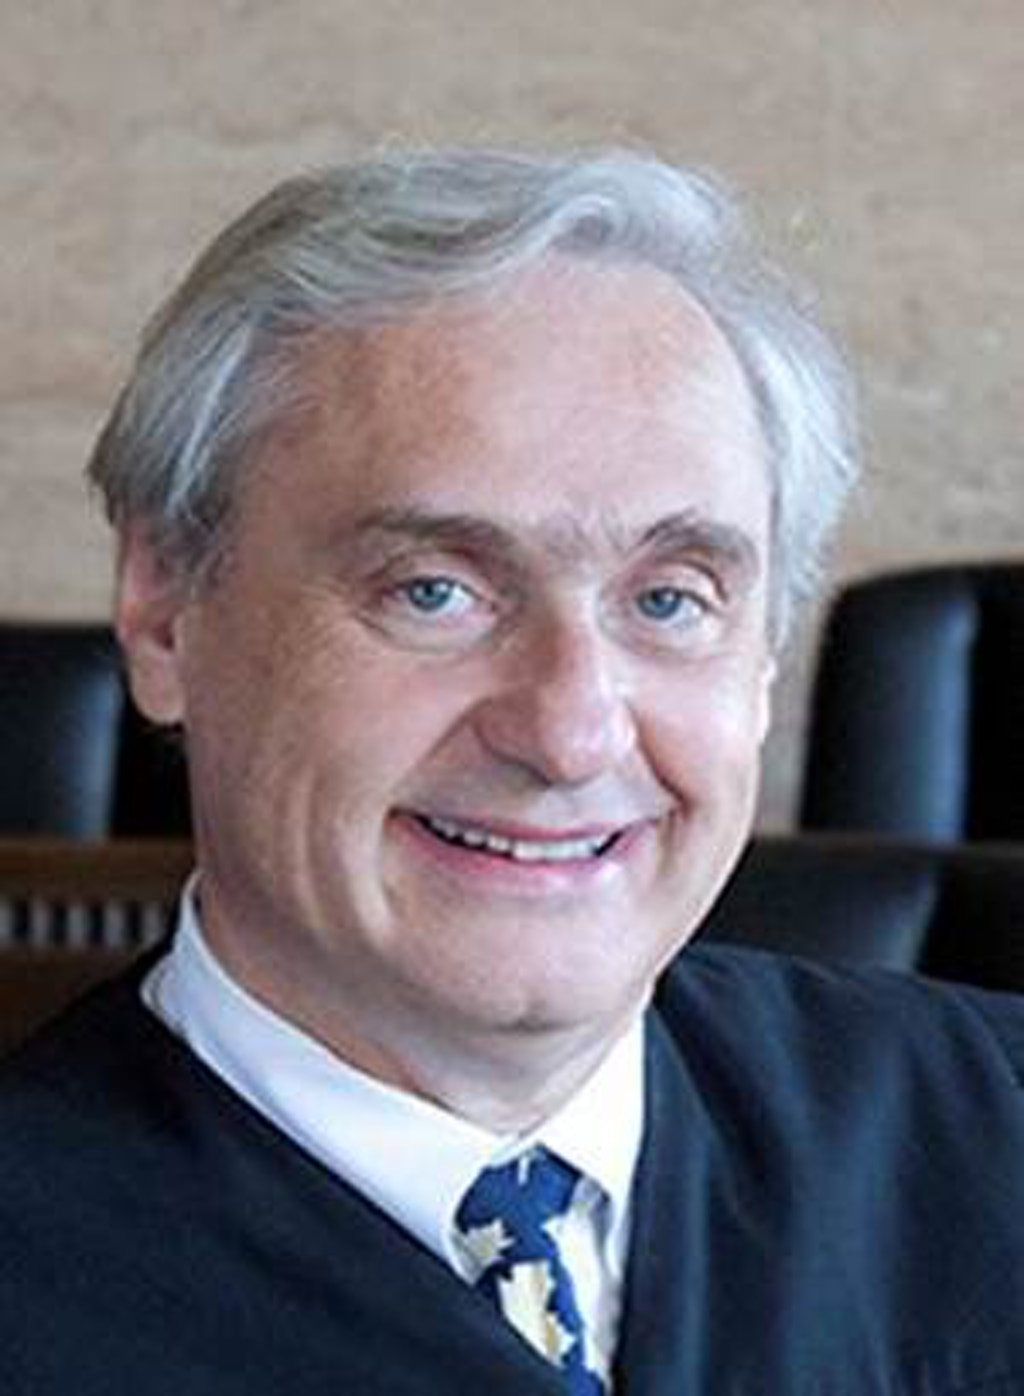 NEW VOICES: Ninth Circuit Judge Calls for Sweeping Criminal Justice Reform